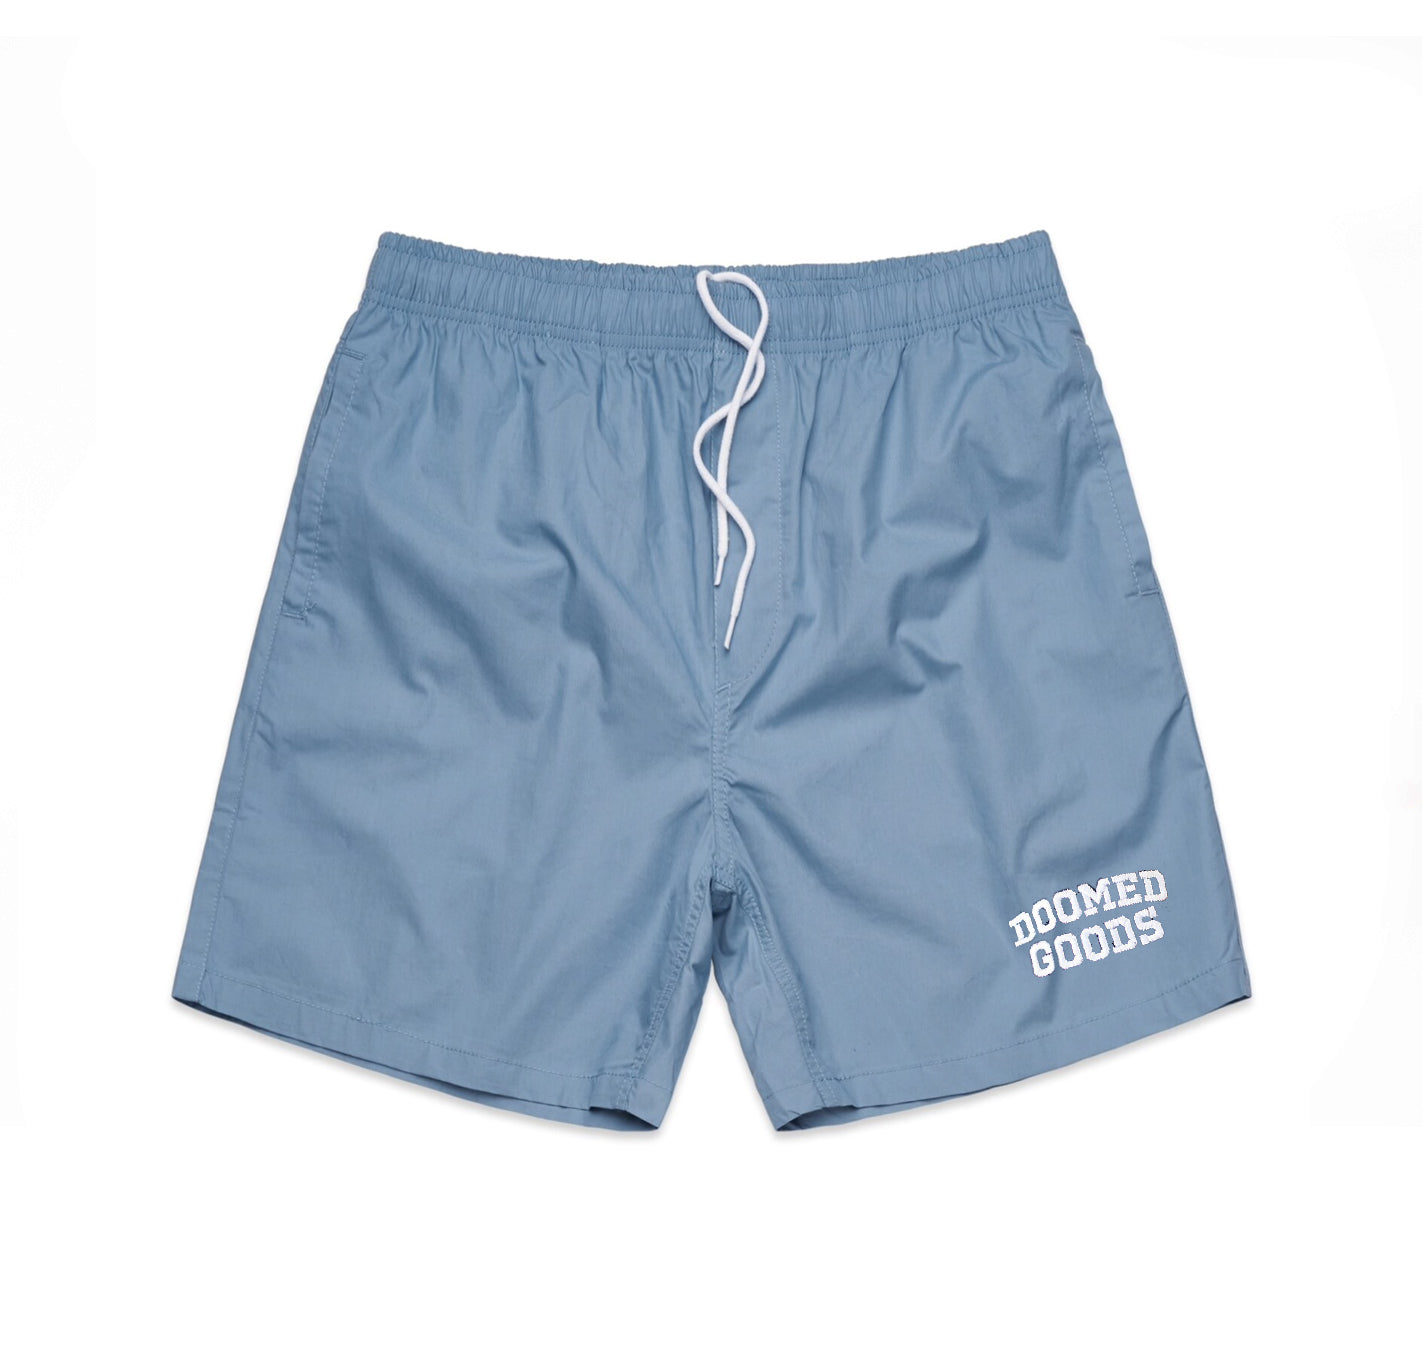 Goods Shorts Blue